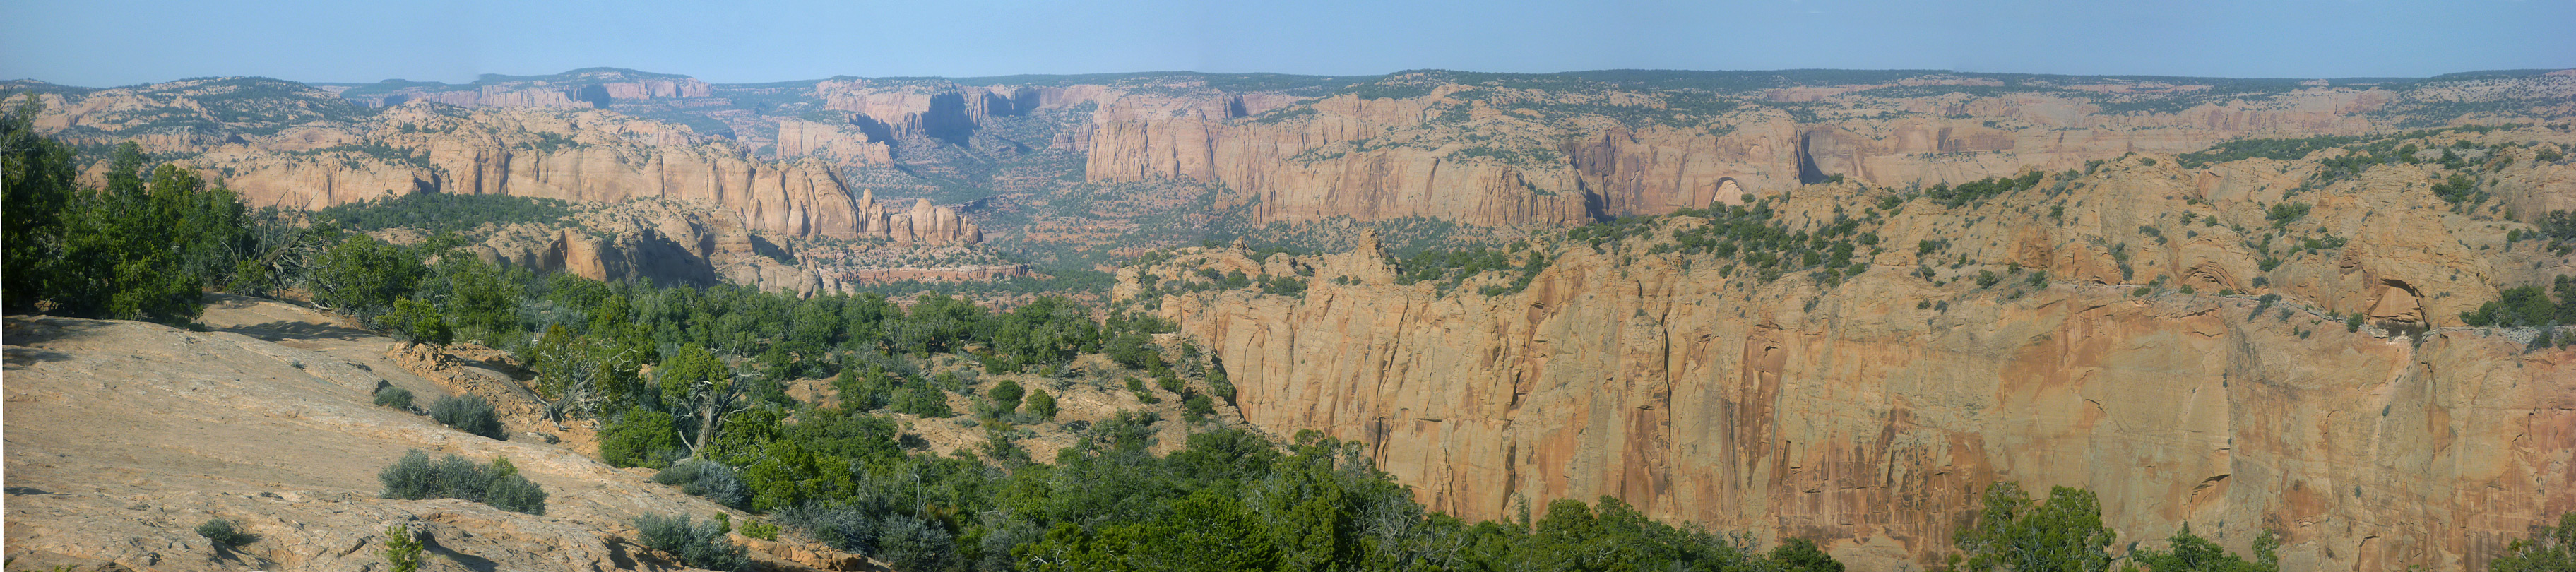 Tsegi Overlook